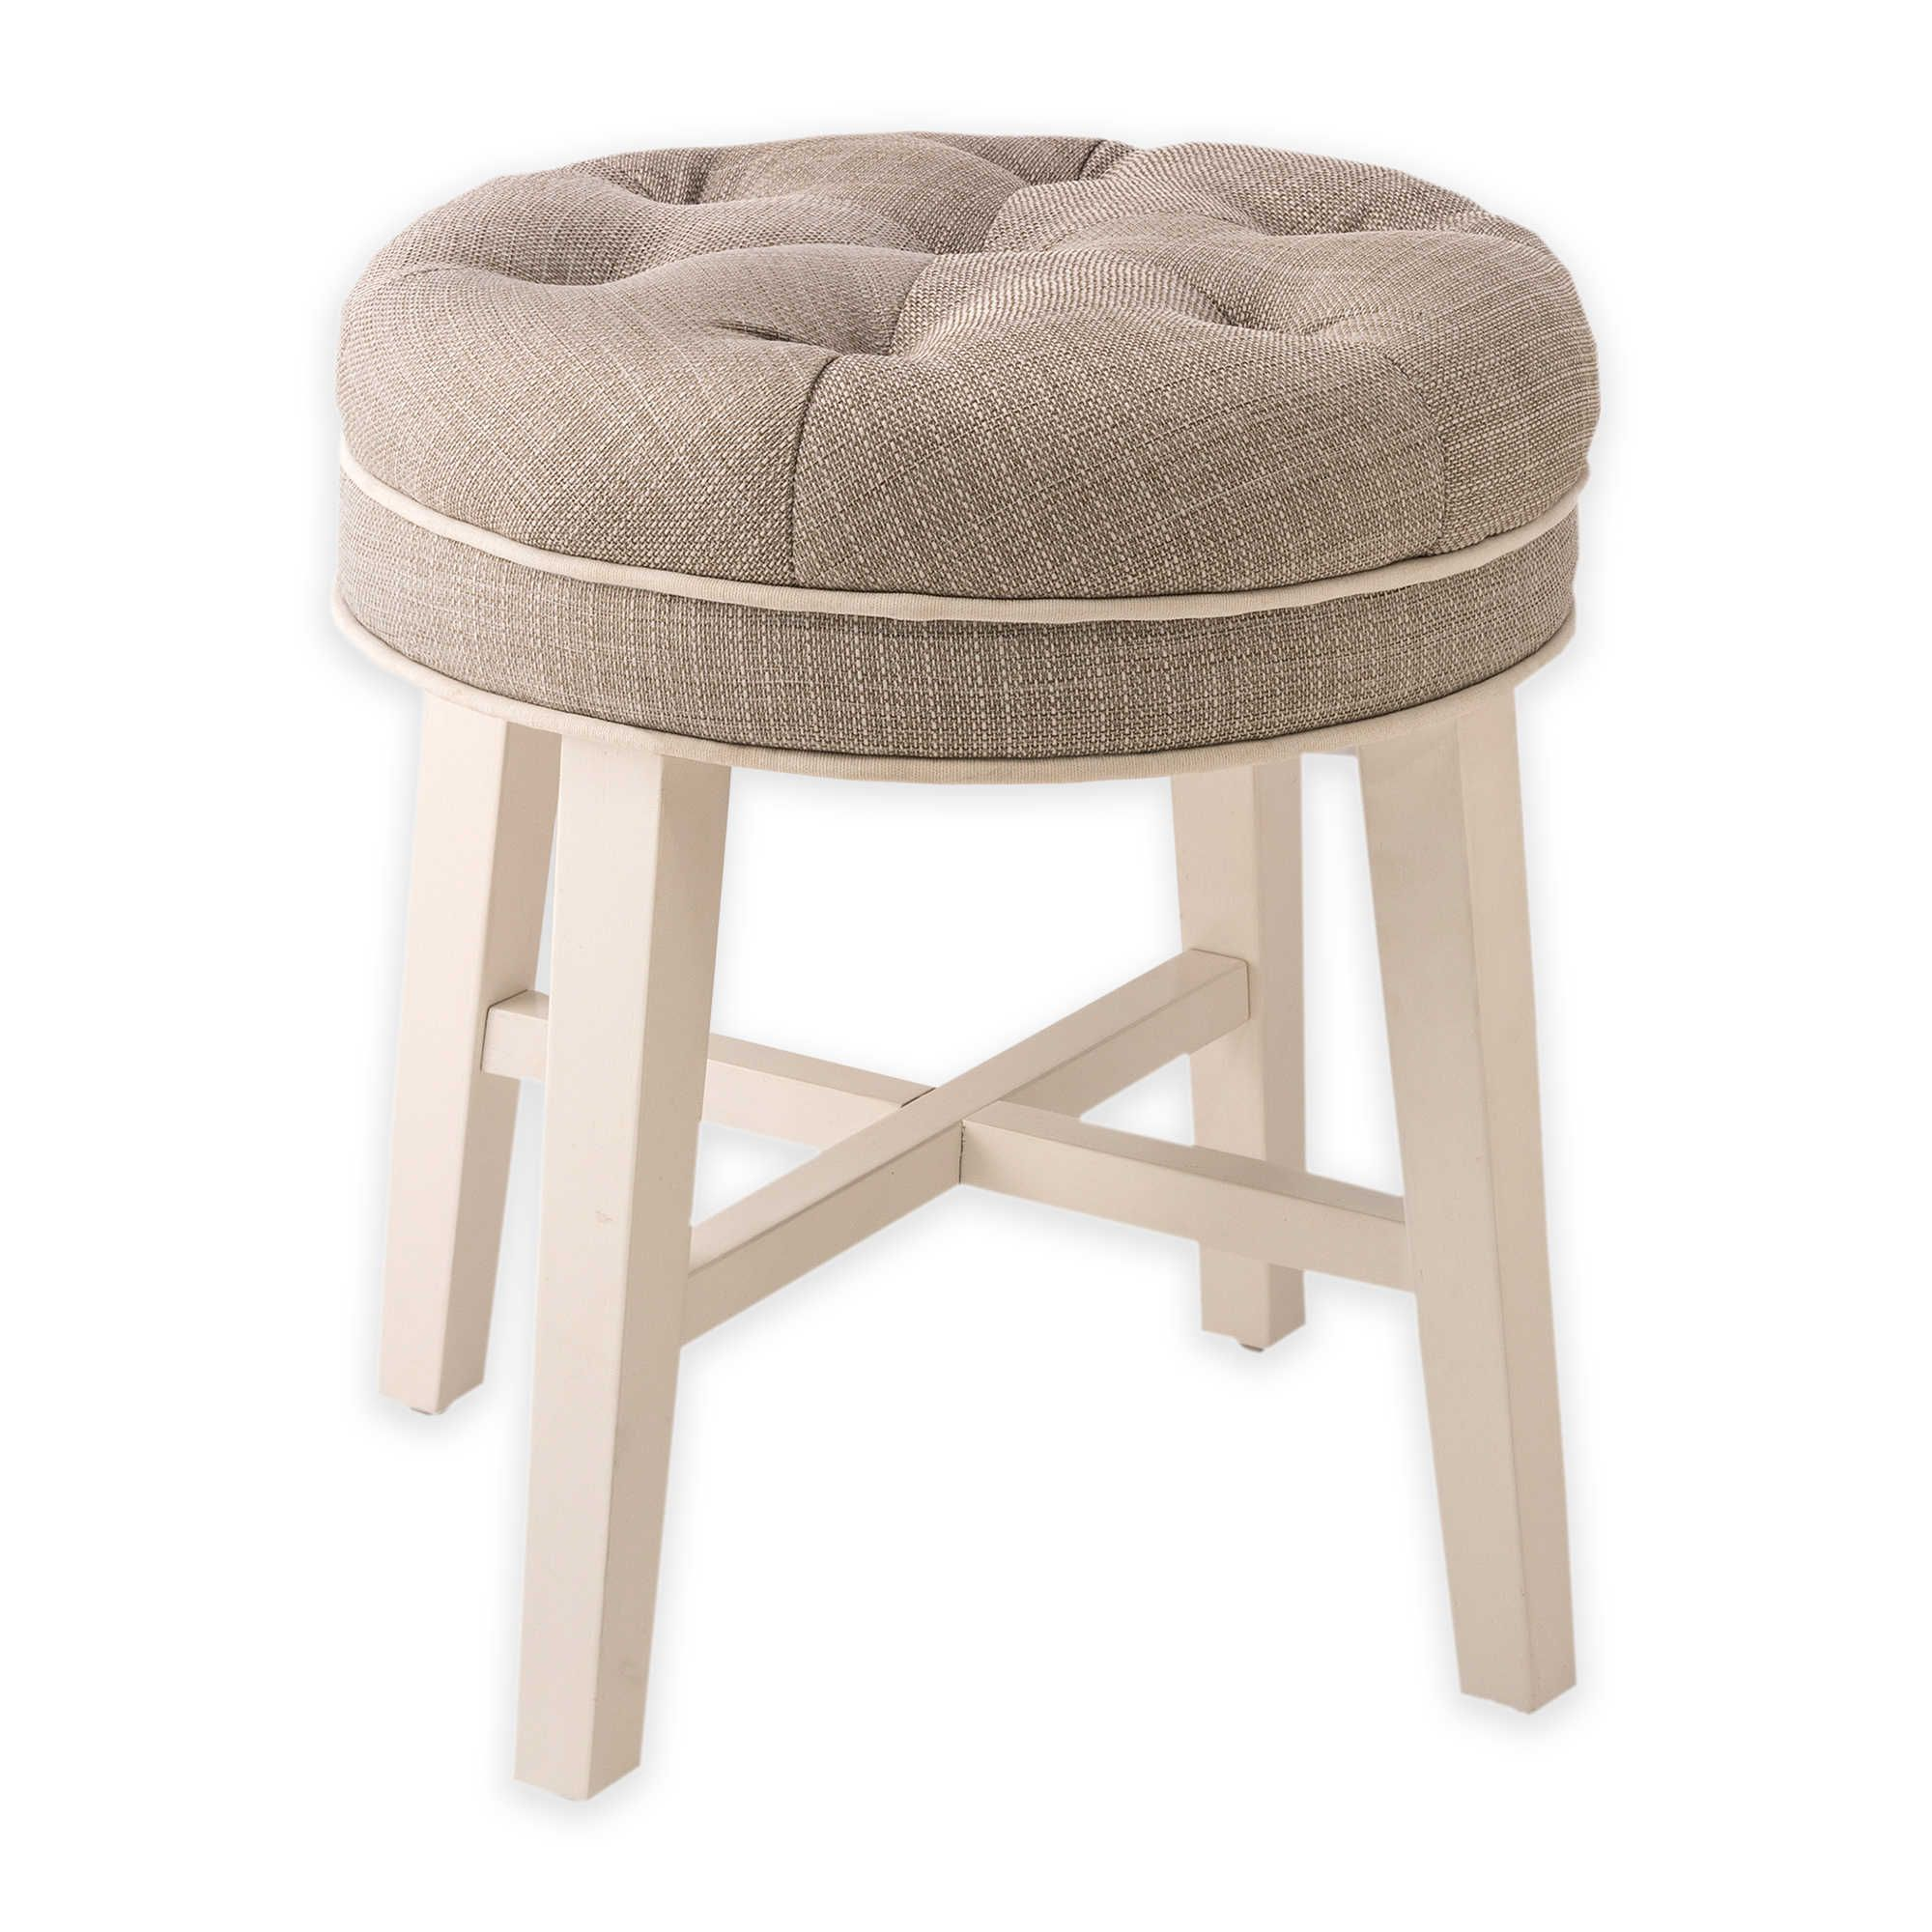 Hillsdale Krauss Wood Vanity Stool In Grey Vanity Stool